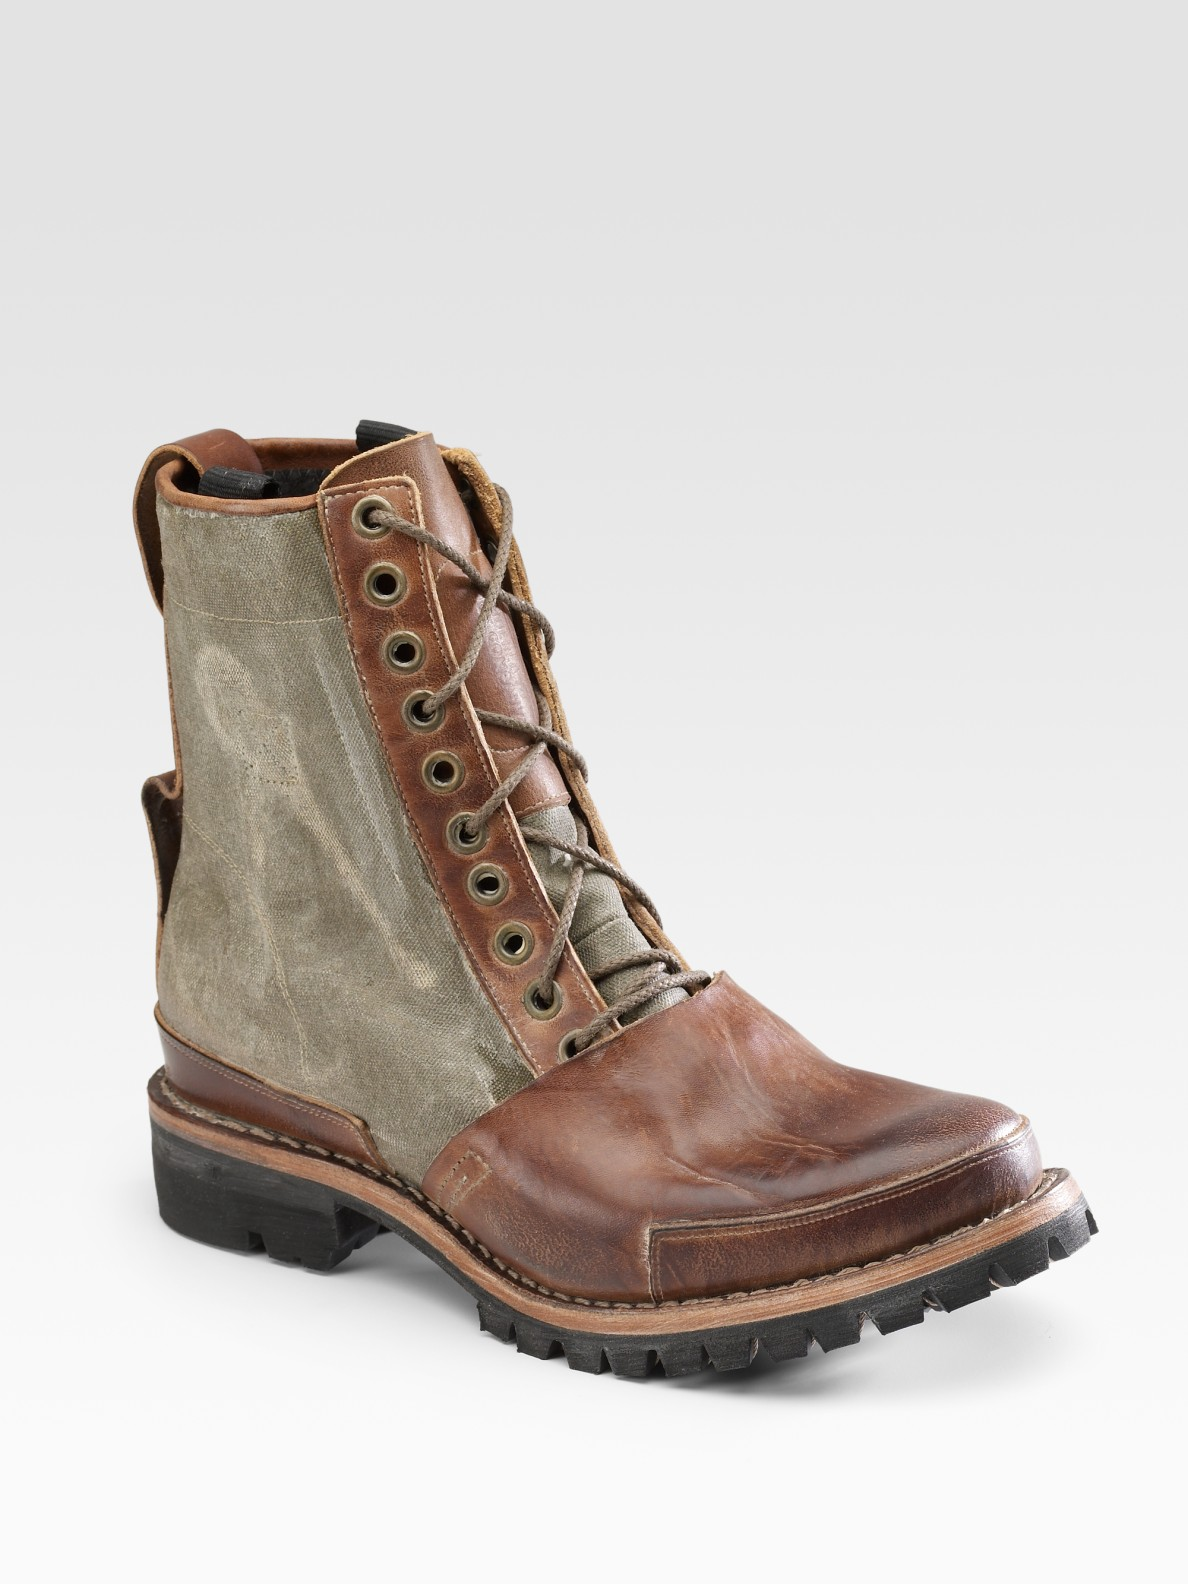 Timberland Tackhead Winter Boots In Brown For Men Lyst